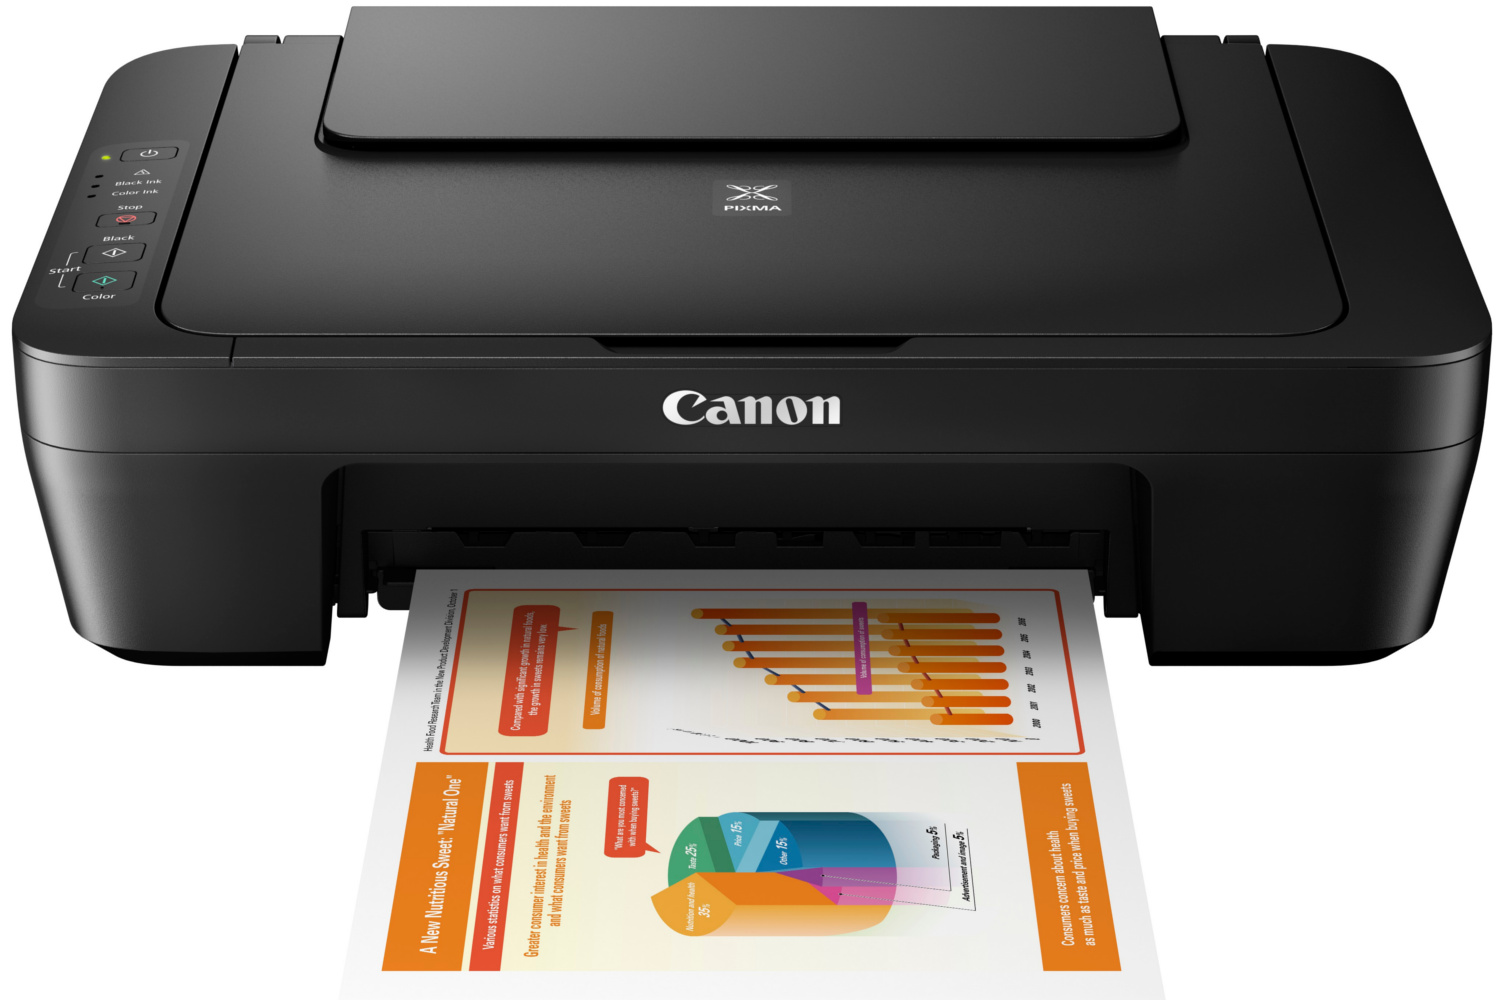 Diverting Canon Multiction Printer Black Printers Multiction Printers Harvey Norman Ireland Epson 1430 Driver Windows 8 Epson 1430 Driver Windows 10 dpreview Epson 1430 Driver